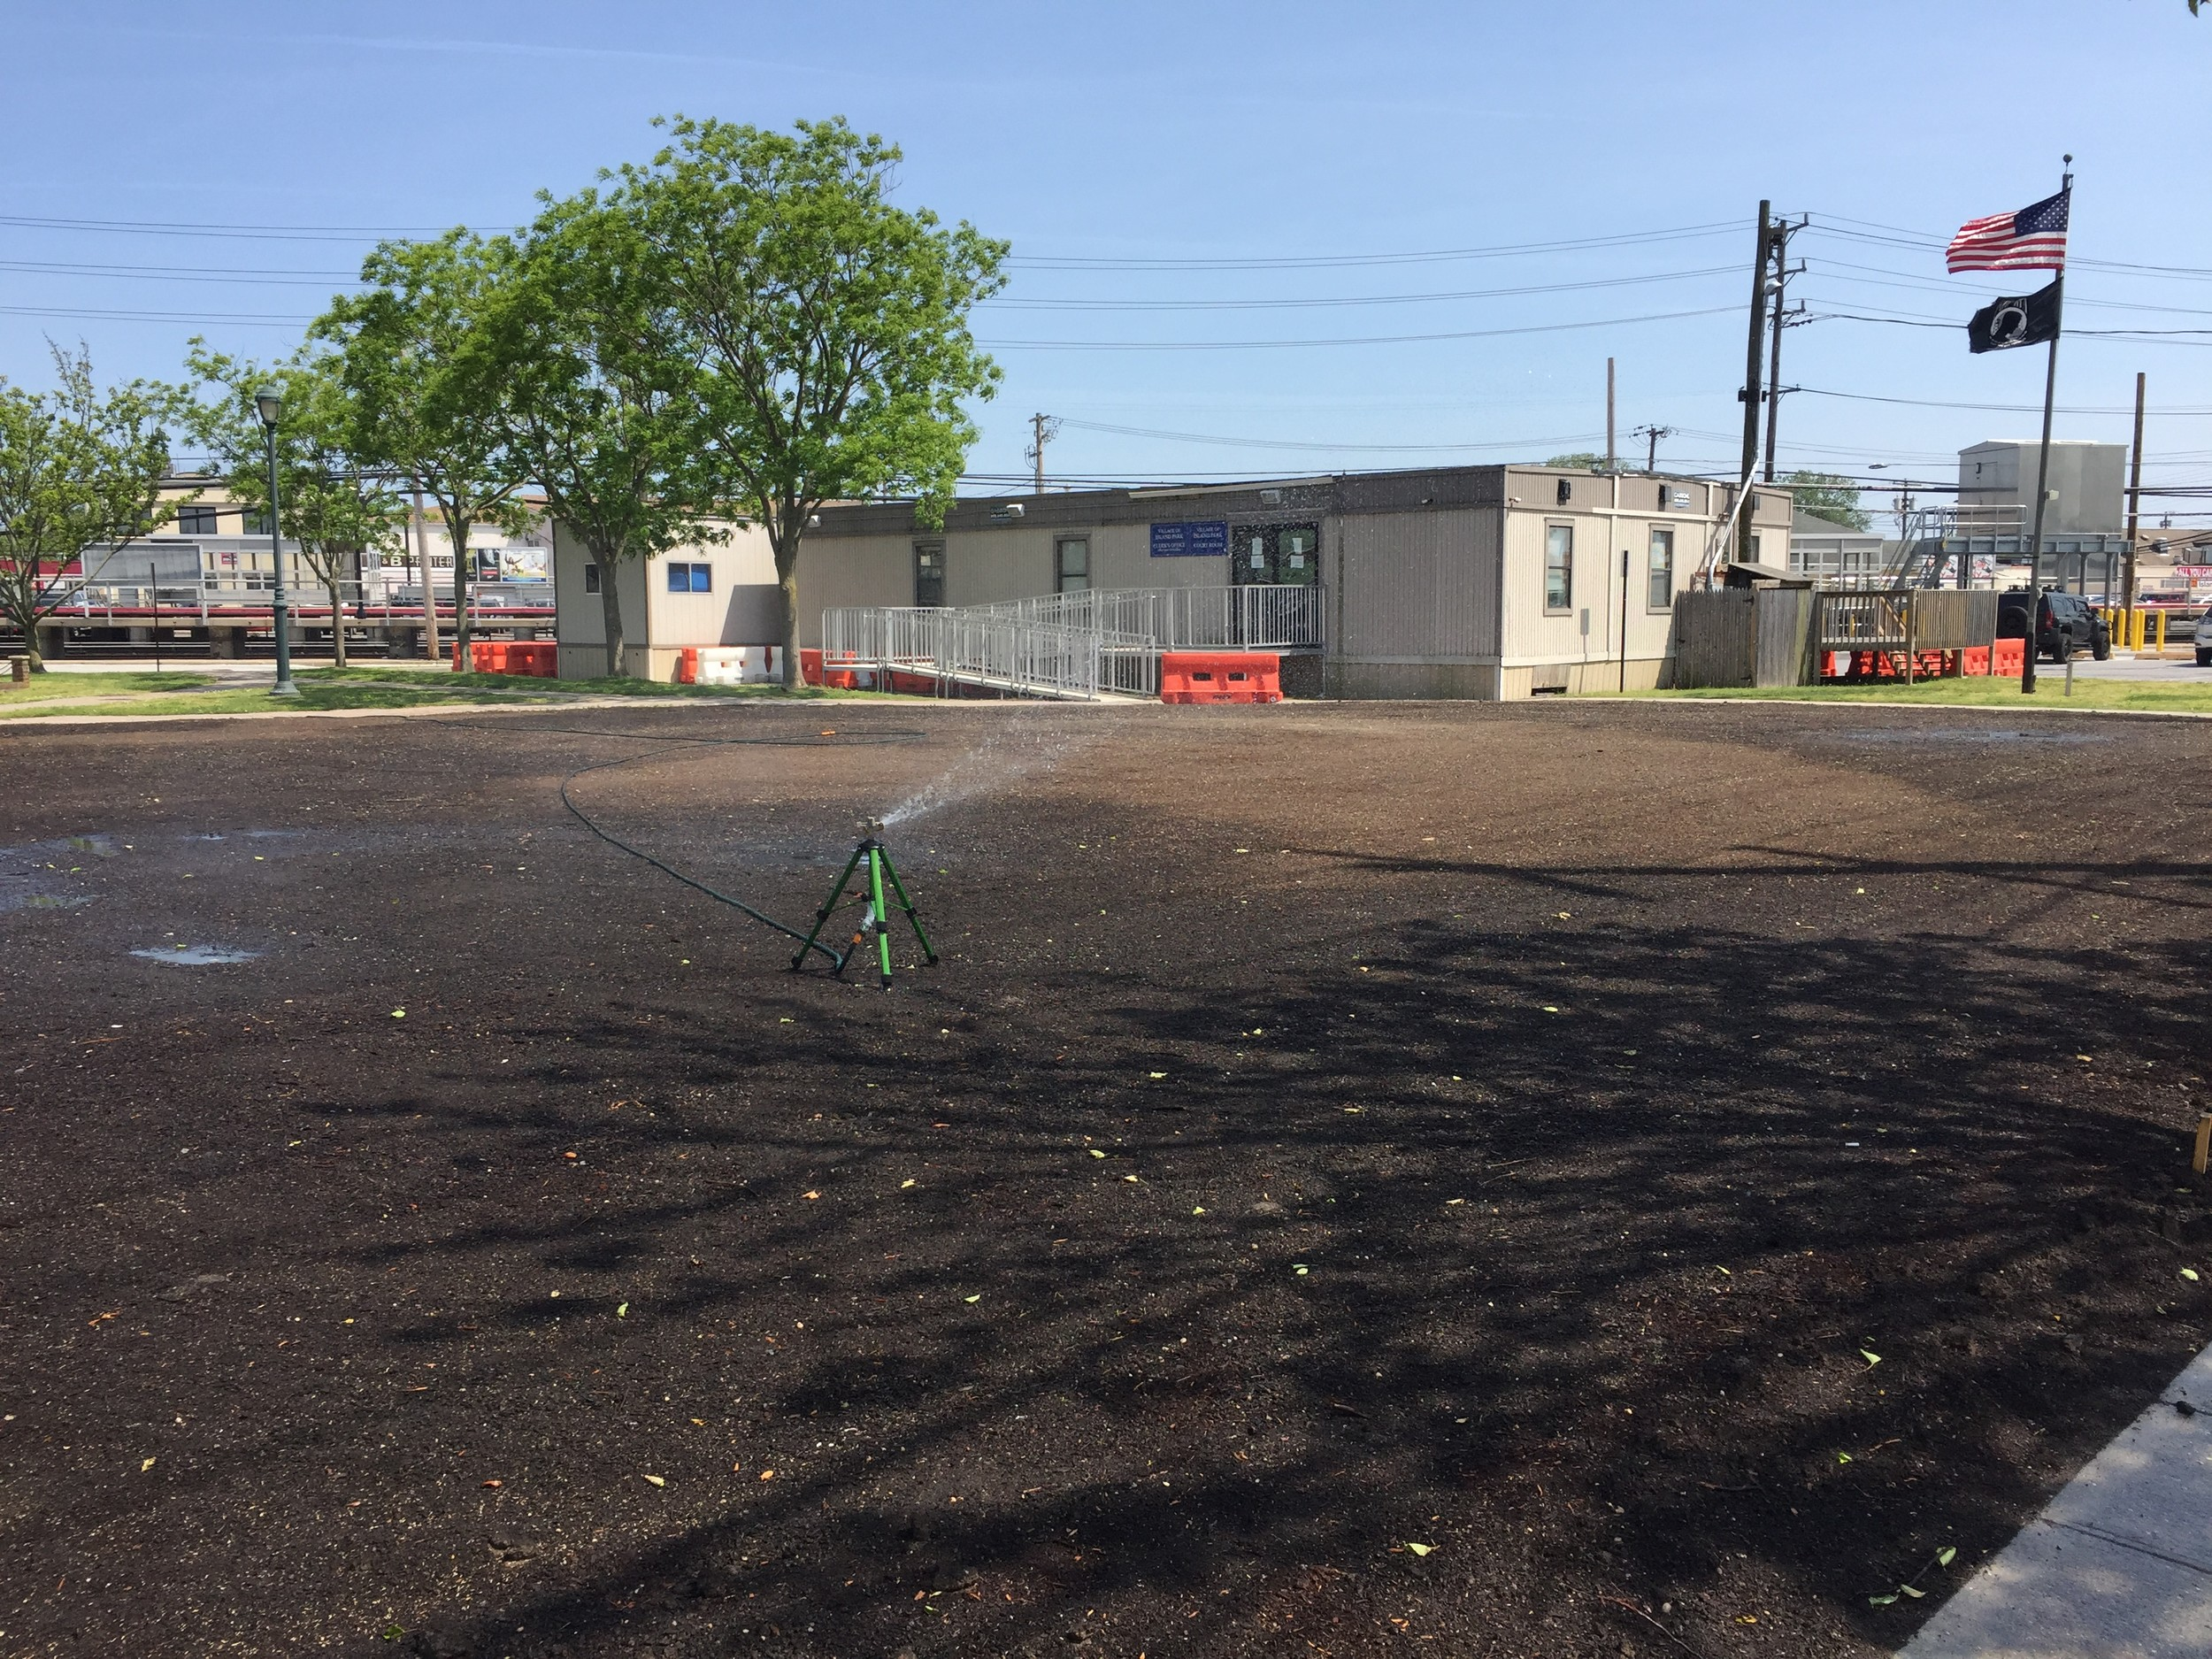 The village has started planting grass on the old Village Hall property, which will become a park and, officials hope, enhance the appeal of Long Beach Road.